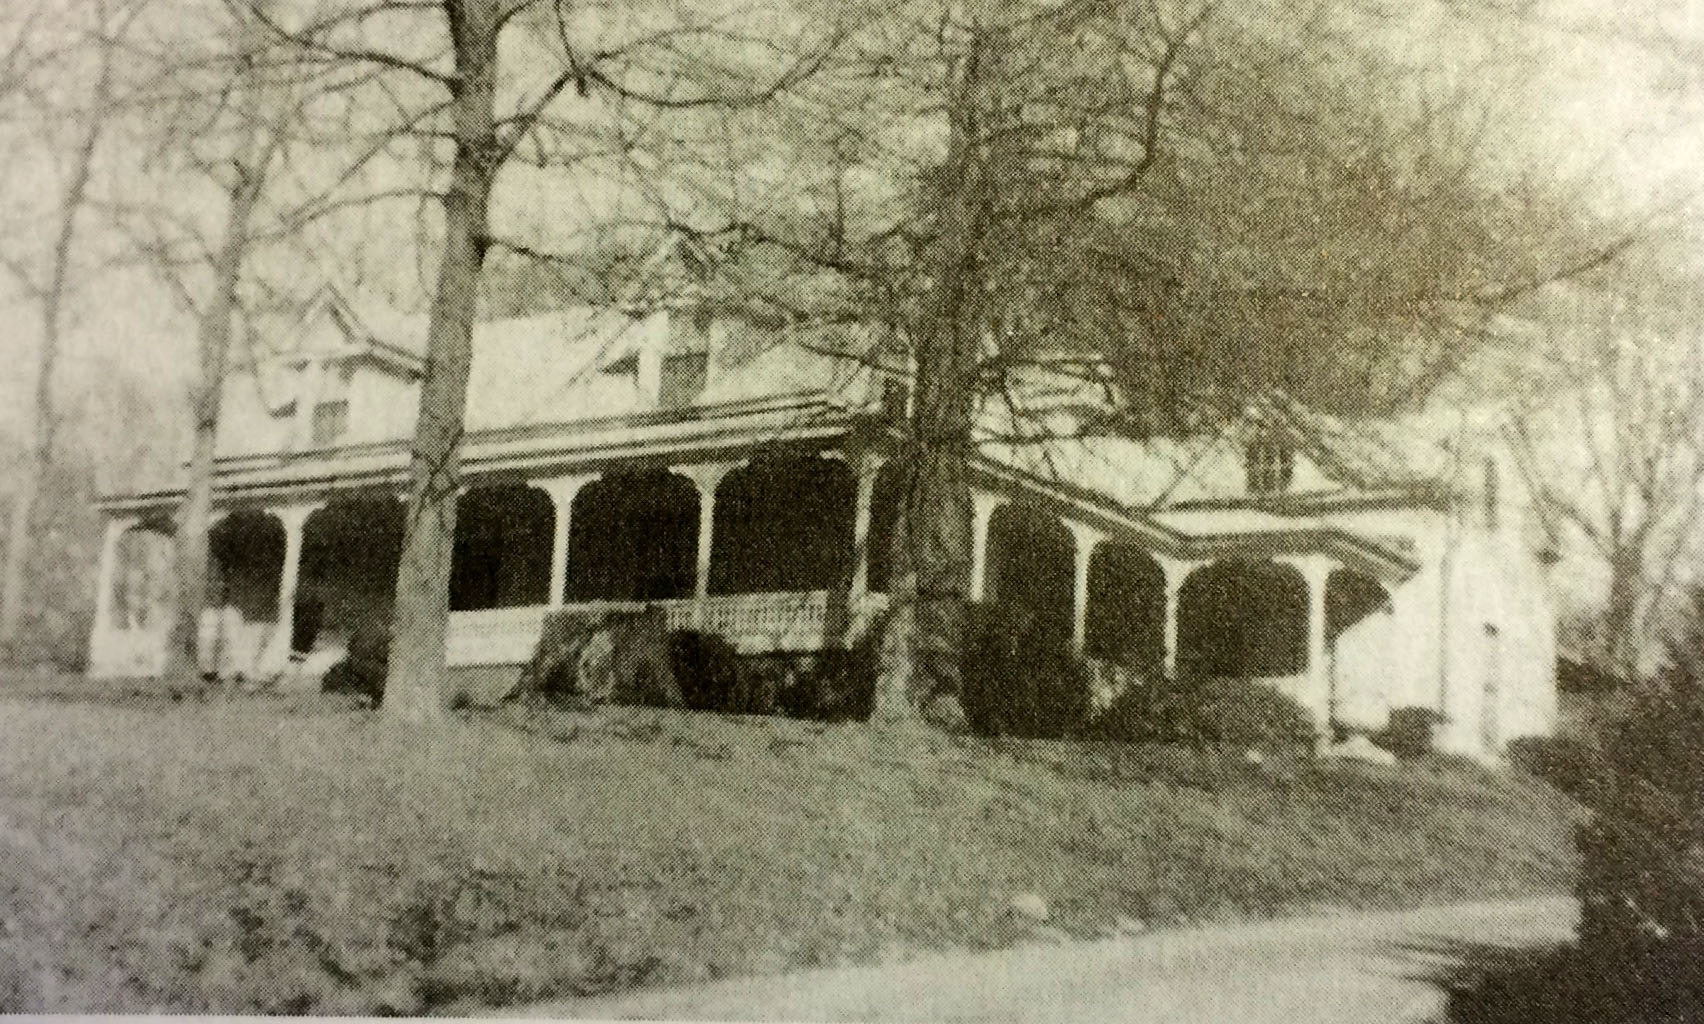 Napoleon Cheshire's Farm House (used to stand across the street from the Cheshire Farm Trailhead on Cheshire Bridge Road)